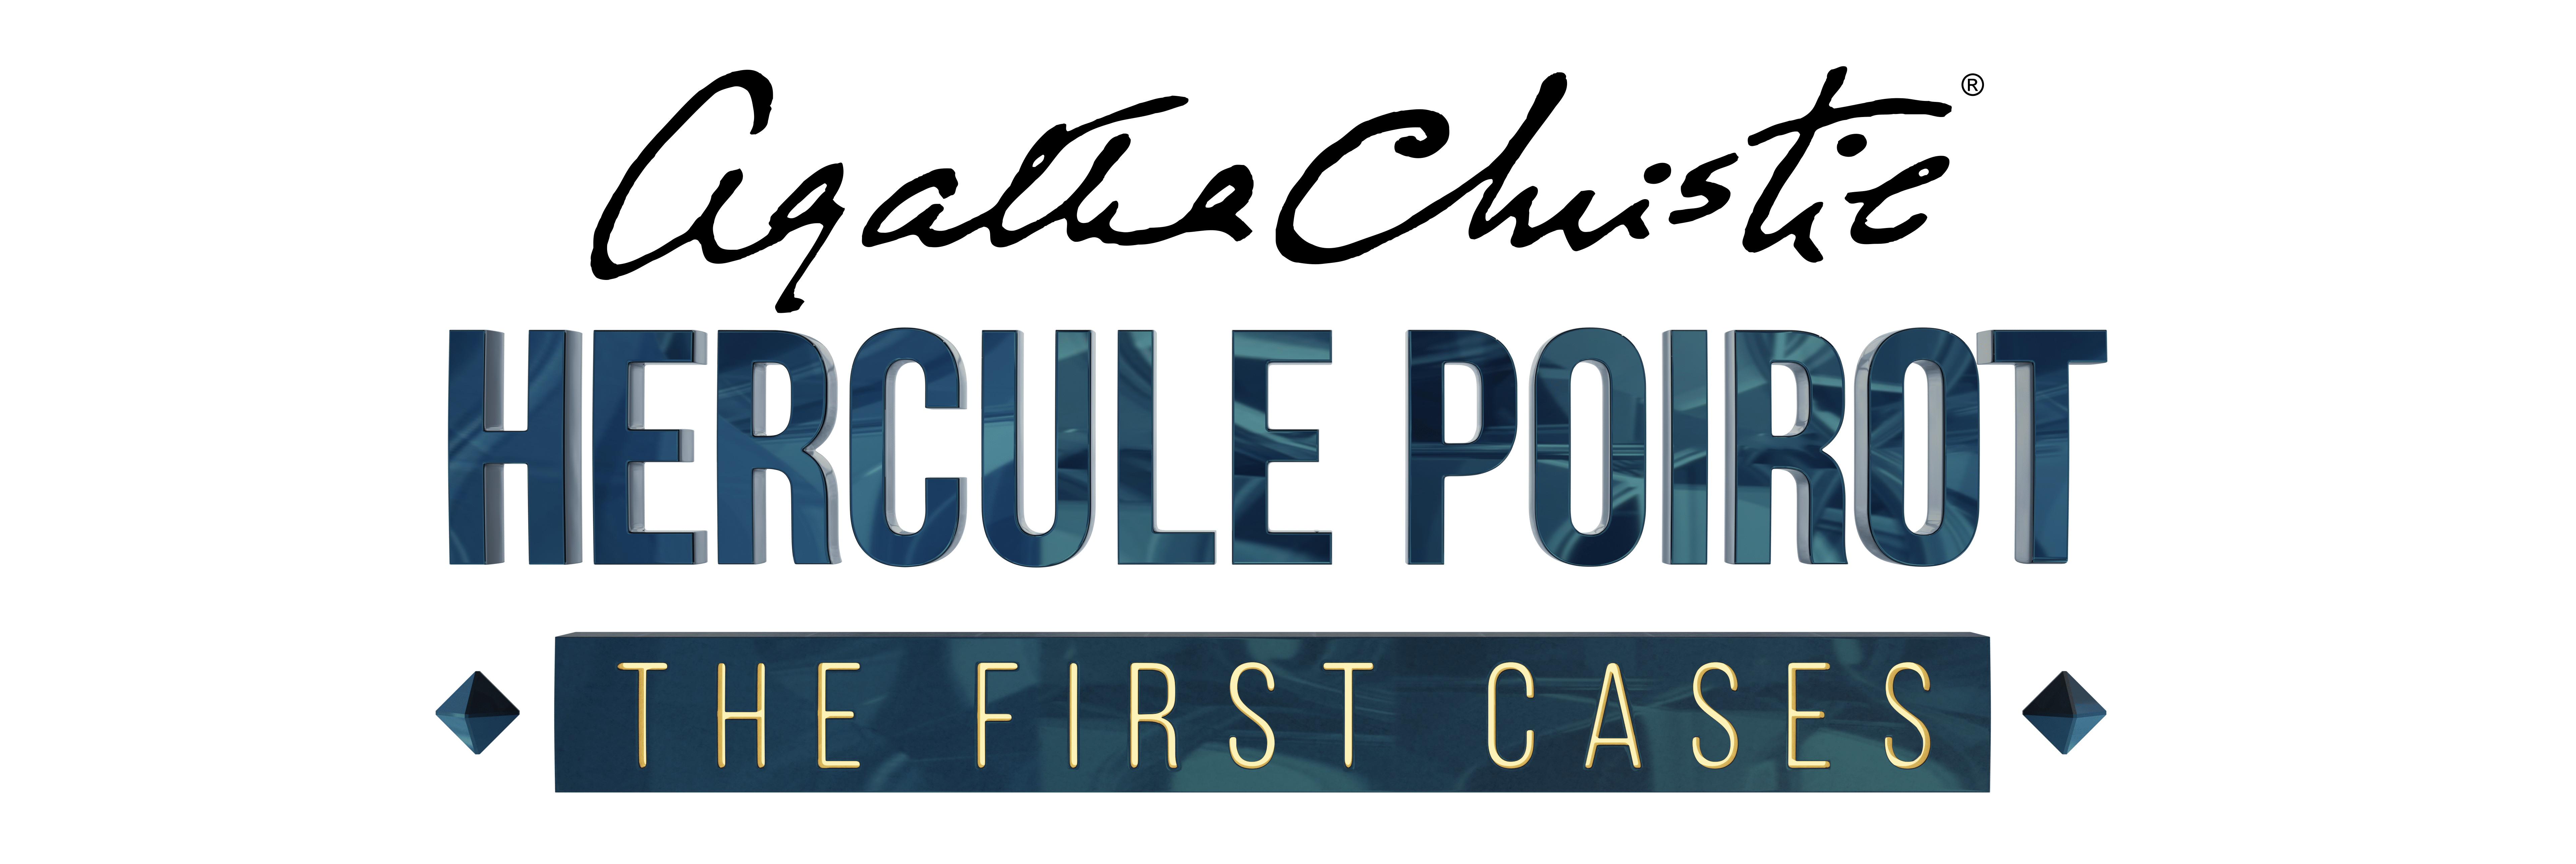 Learn more about Agatha Christie – Hercule Poirot: The First Cases through an insightful dev diary